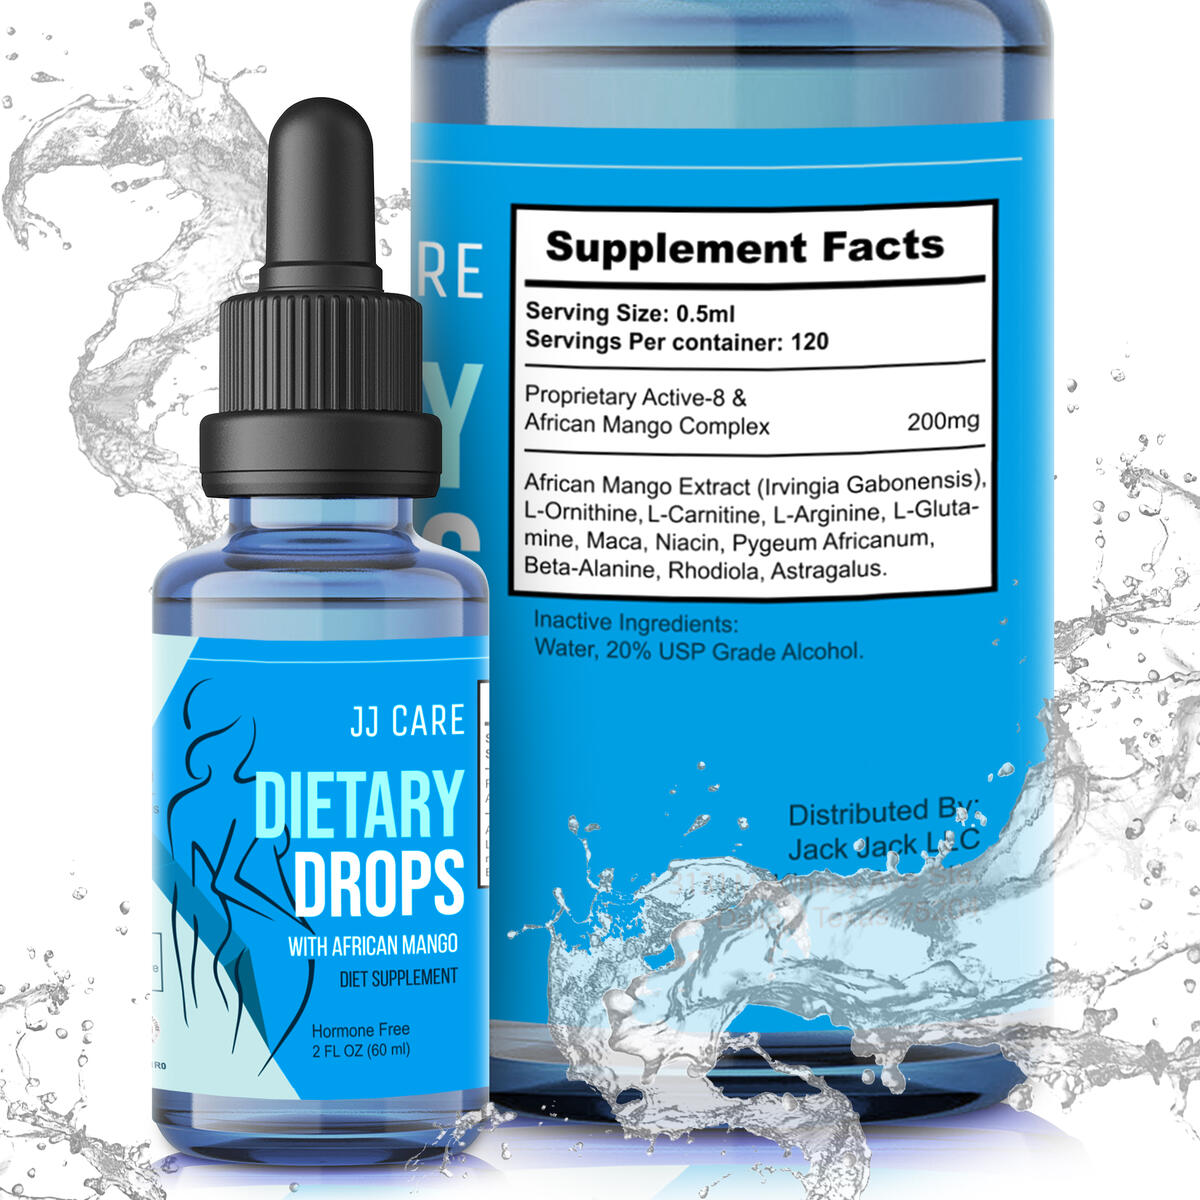 Diet Drops for Weight Loss for Women & Men (2 Fl Oz) Appetite Suppressant Drops -Made in USA- Liquid Weight Loss Drops - Metabolism Drops with L-Carnitine L-Arginine L-Glutamine, African Mango Extract